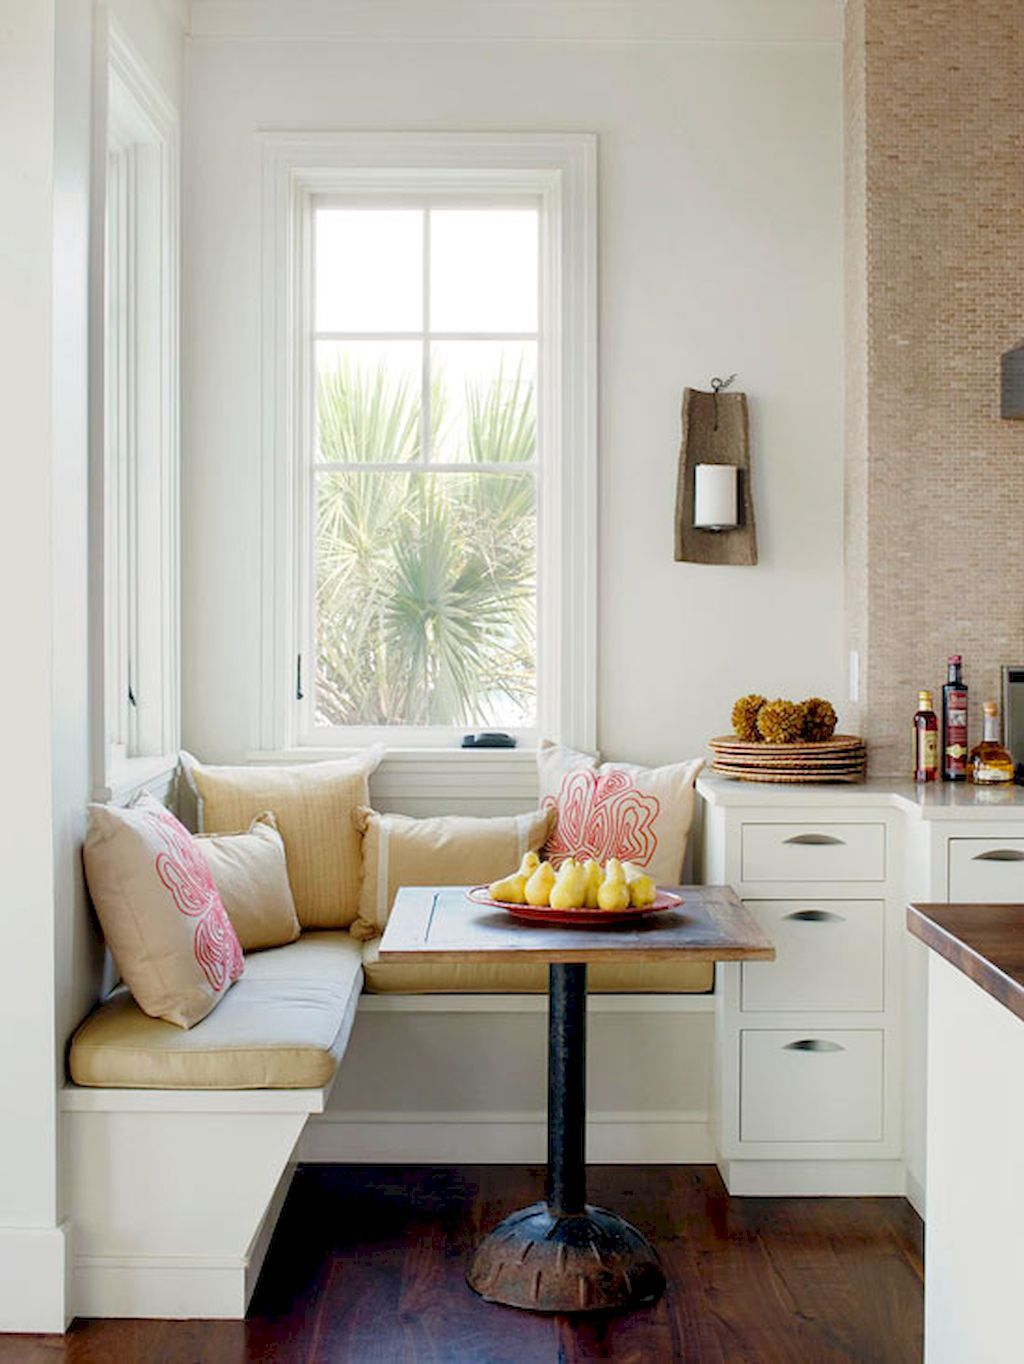 40 Small Space Breakfast Nook Apartment Ideas on A Budget ...